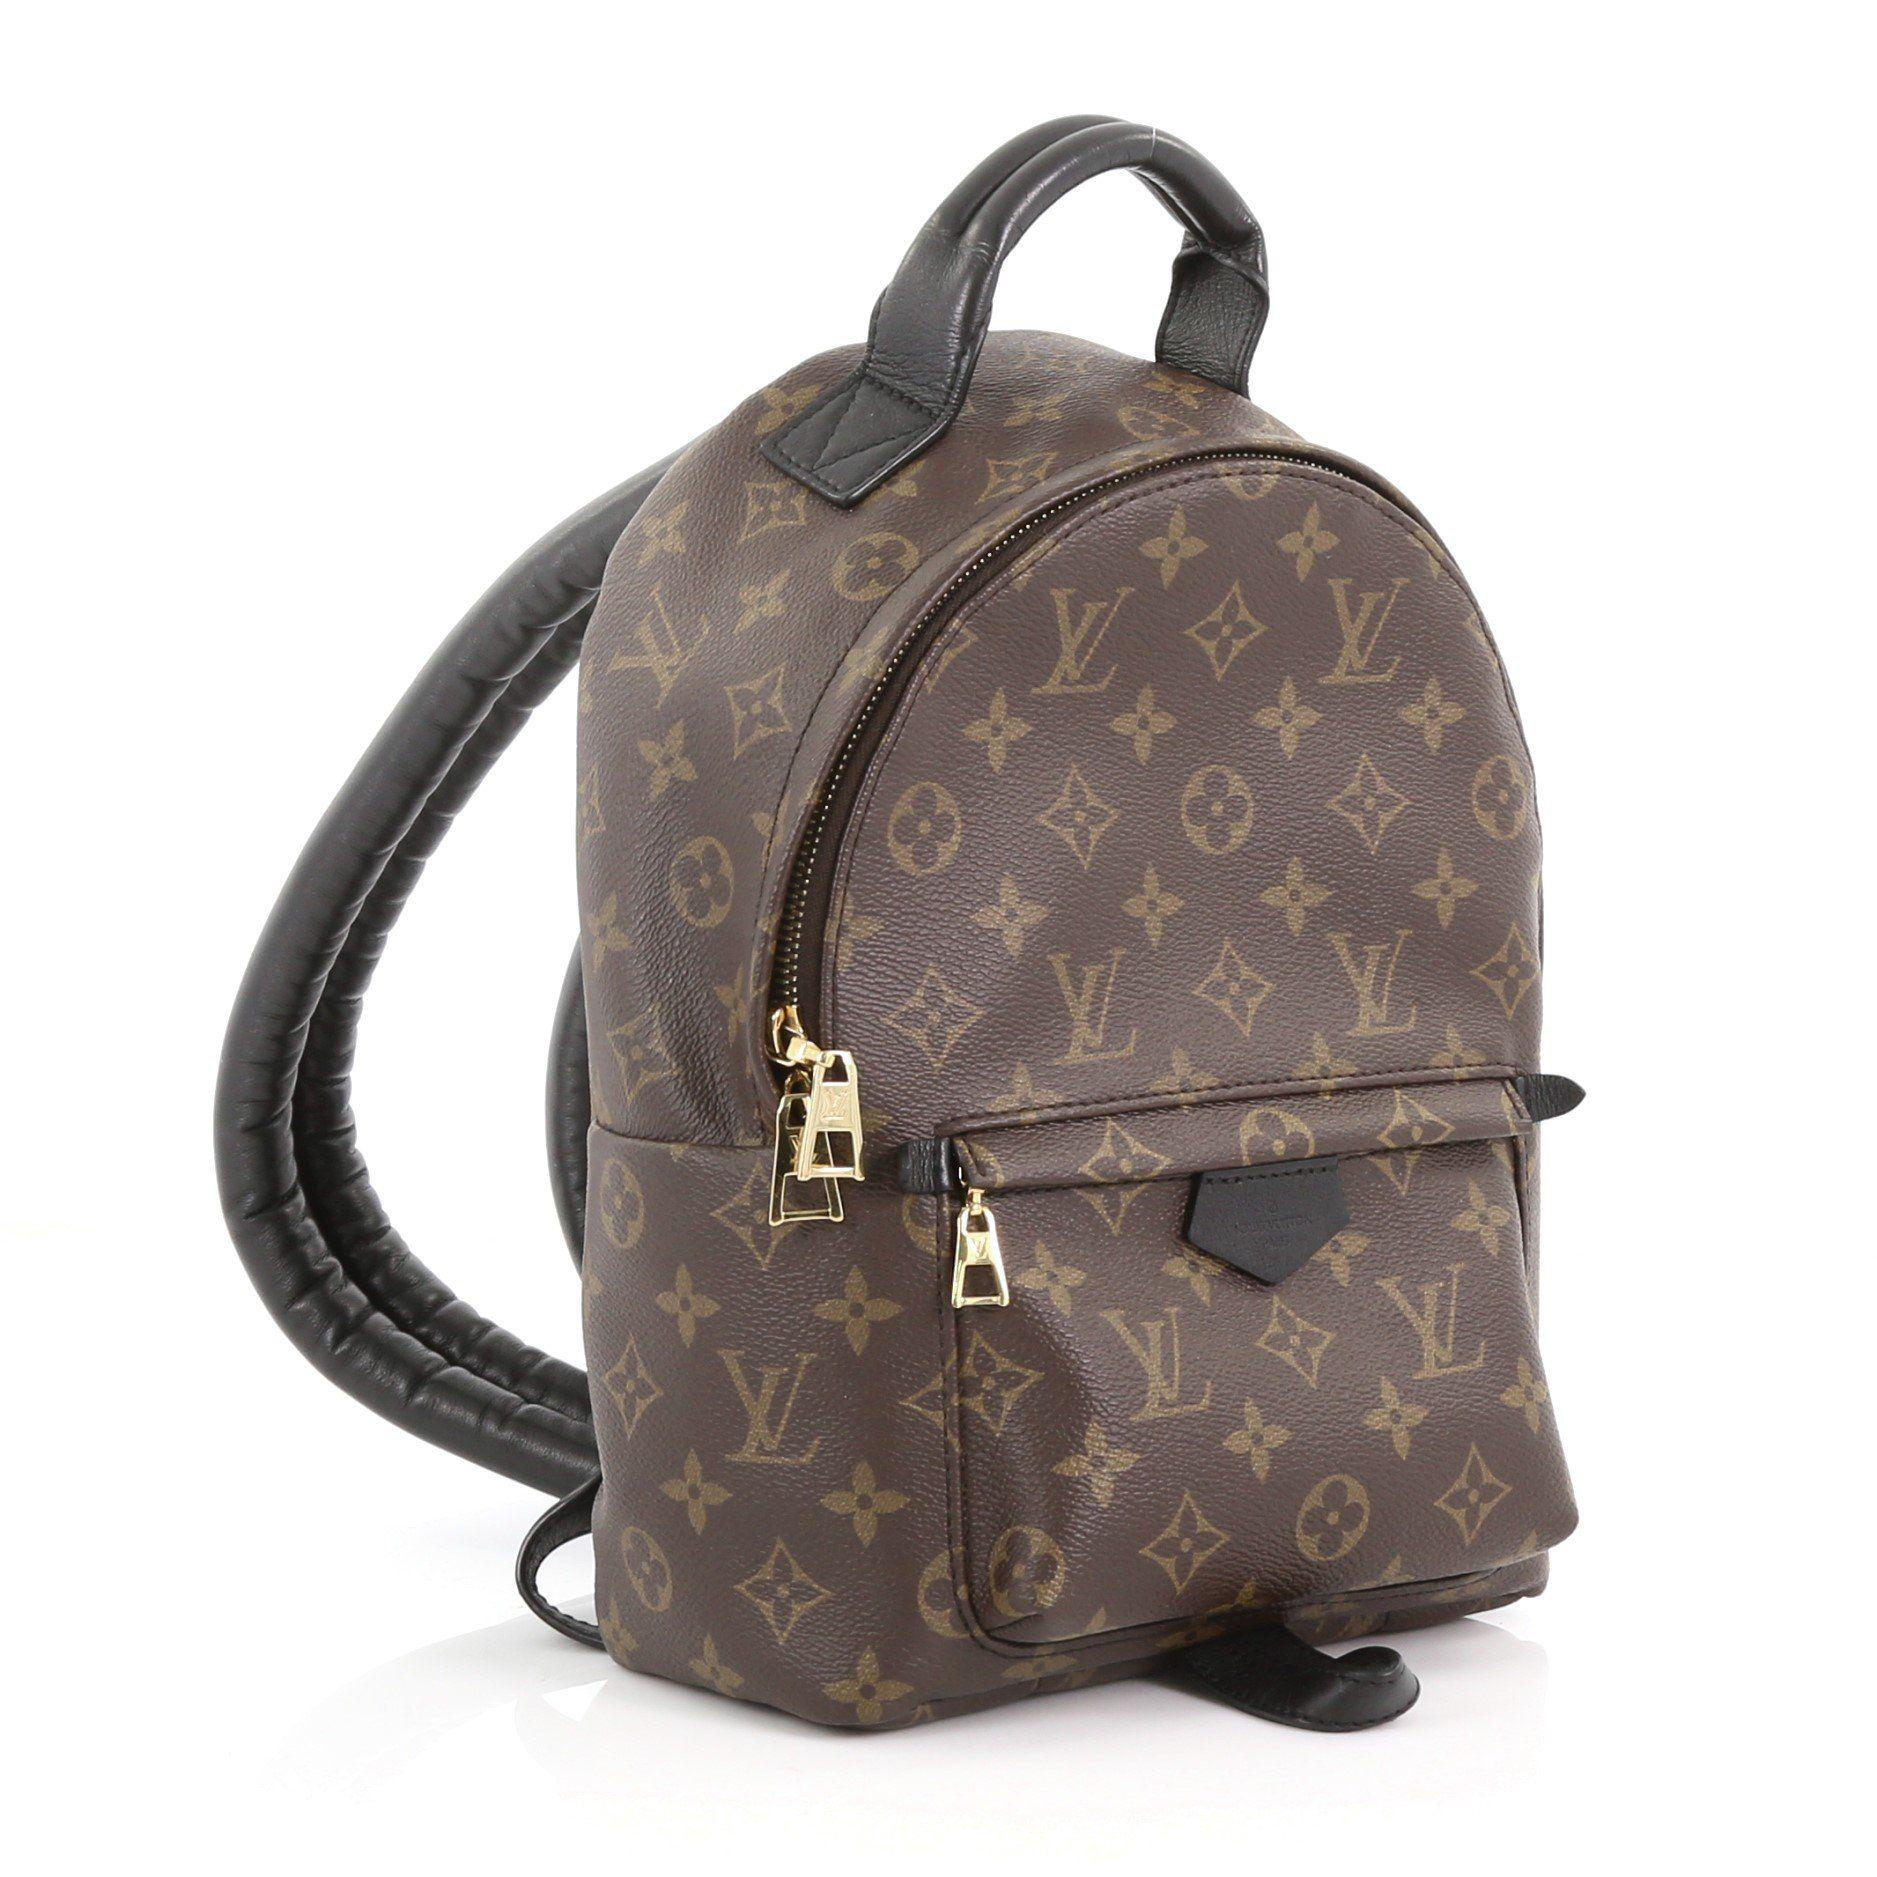 Lyst - Louis Vuitton Pre Owned Palm Springs Backpack Monogram Canvas Pm in  Brown c0cb2dab24